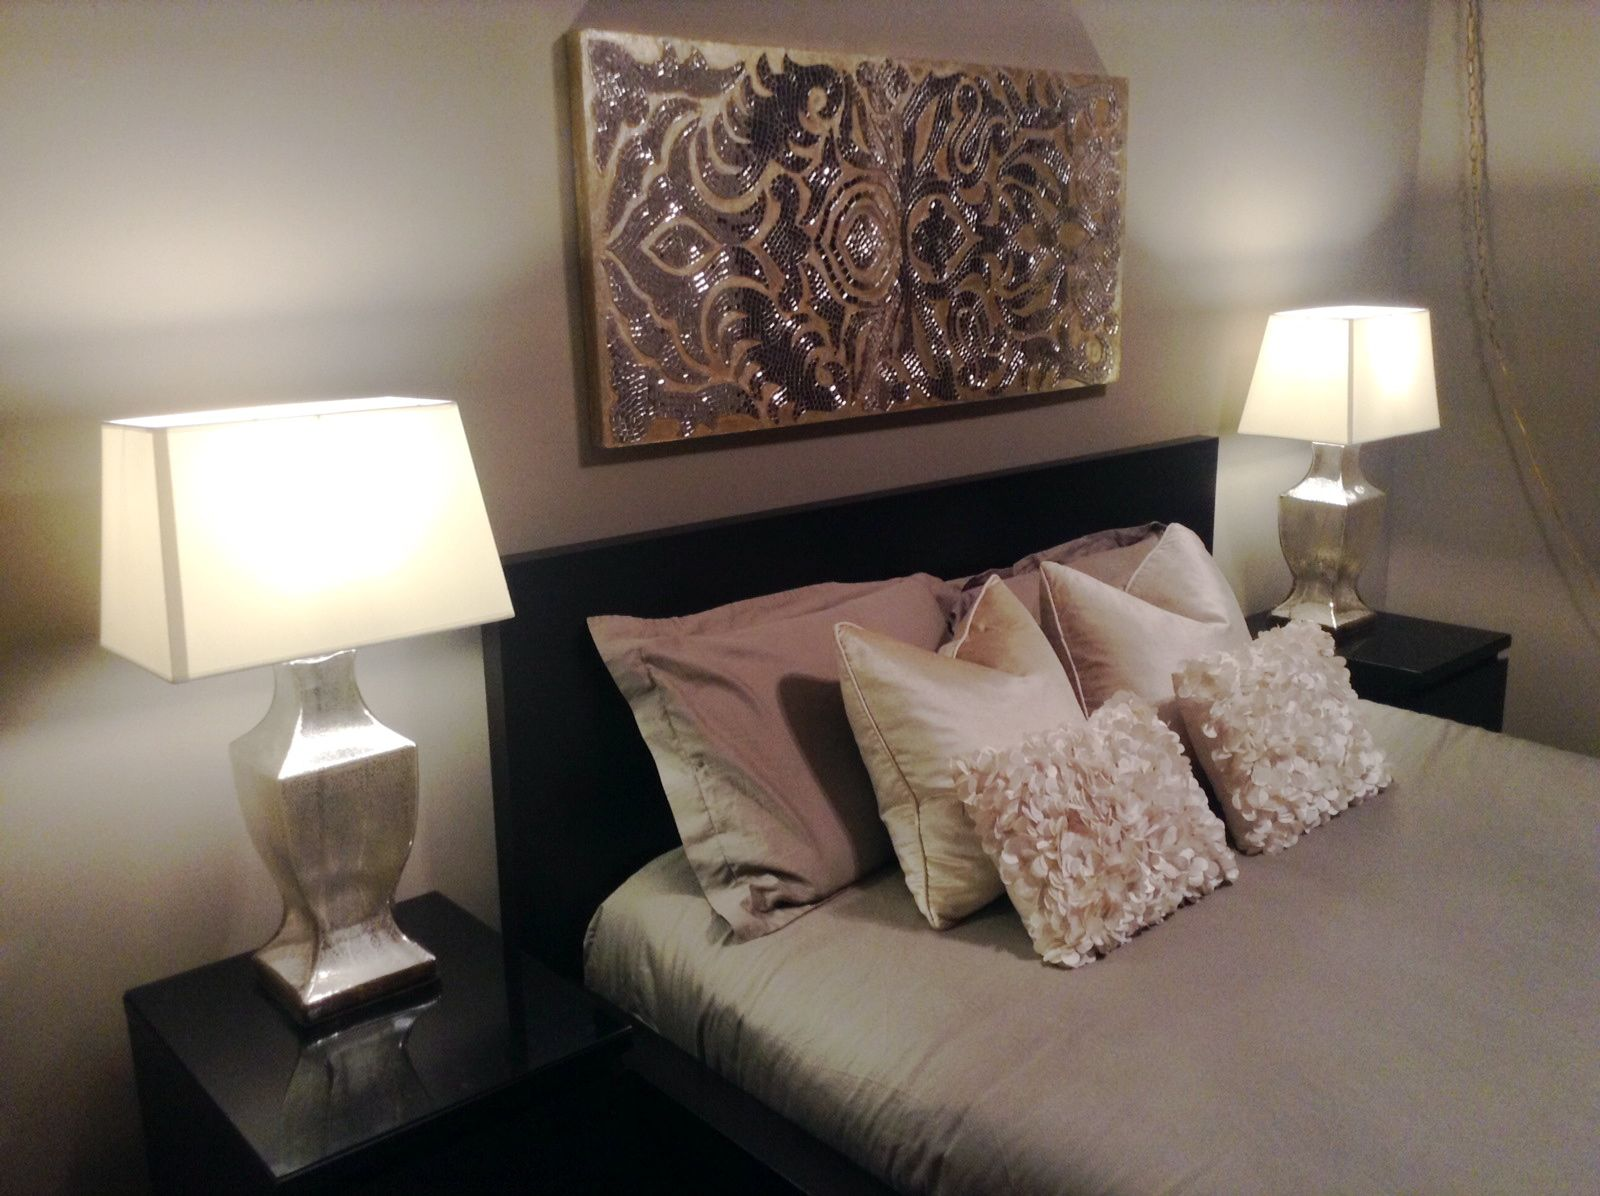 Our Gorgeous @Pier Mallory 1 Imports Pillows U0026 Mirrored Damask Panel In Our  Master Bedroom